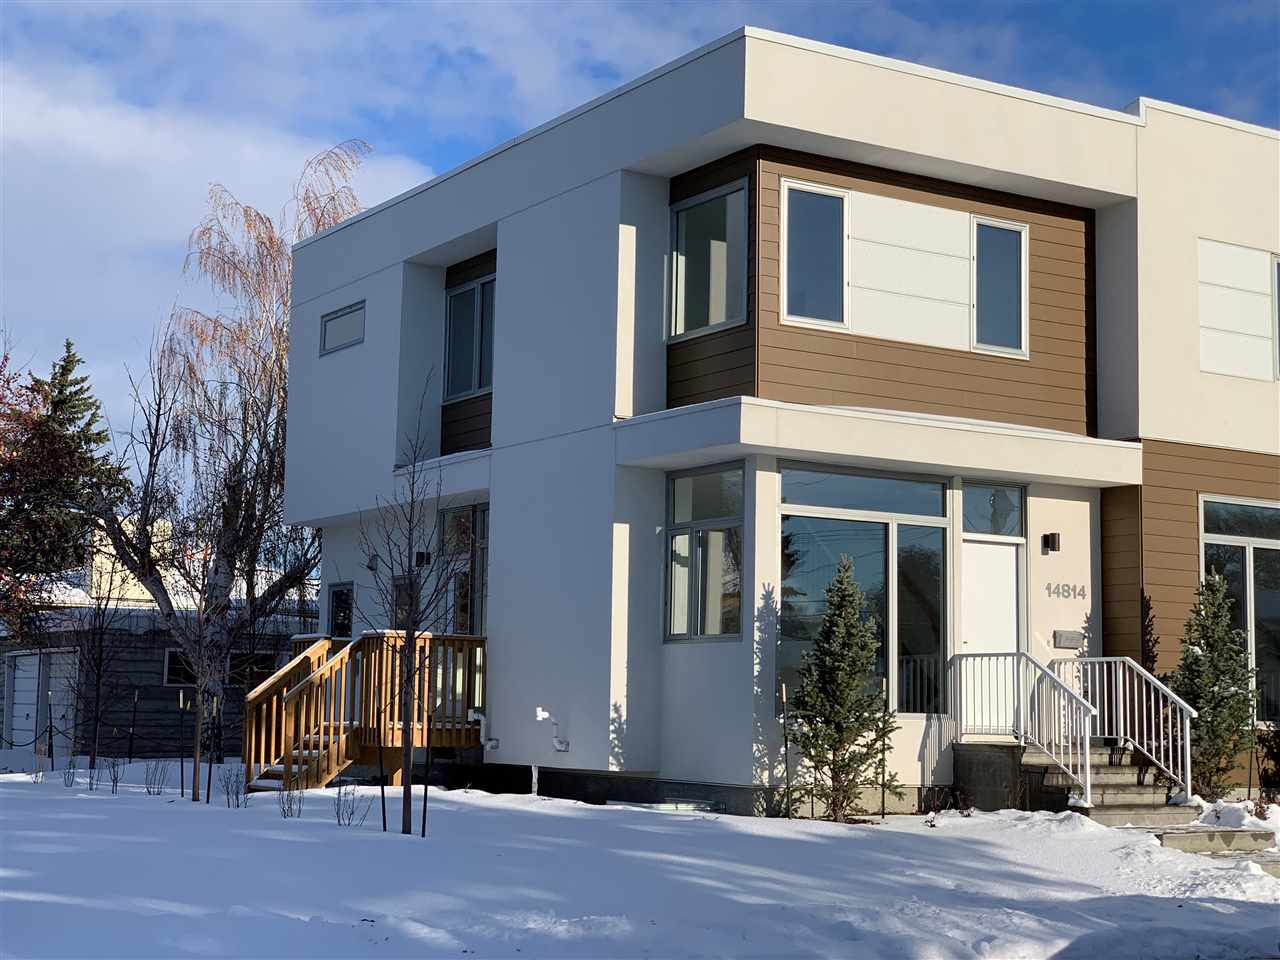 Quality Affordable Living in Crestwood! Well situated, this two-storey row house is located just 12 minutes from downtown with quick access to NAIT, Grant MacEwan, 124th St, Kingsway and WEM. Brought to you by TRITONE INC, this 4 bedroom/3.5 bath row house is built to exceptional standards. The main floor boasts a comfortable living room with an electric LED fireplace, as well as floor to ceiling windows showcasing an abundance of natural light. There is a modern kitchen with granite countertops and stainless steel appliances, a dining area connecting onto the patio, and a half bath and laundry to complete the main floor. The second floor includes a master bedroom with full ensuite and generous closet space, two additional bedrooms and full bath. The basement includes a family room, spacious bedroom and full bath. Each unit has its own detached garage, and the property is professionally landscaped with fencing and privacy screens